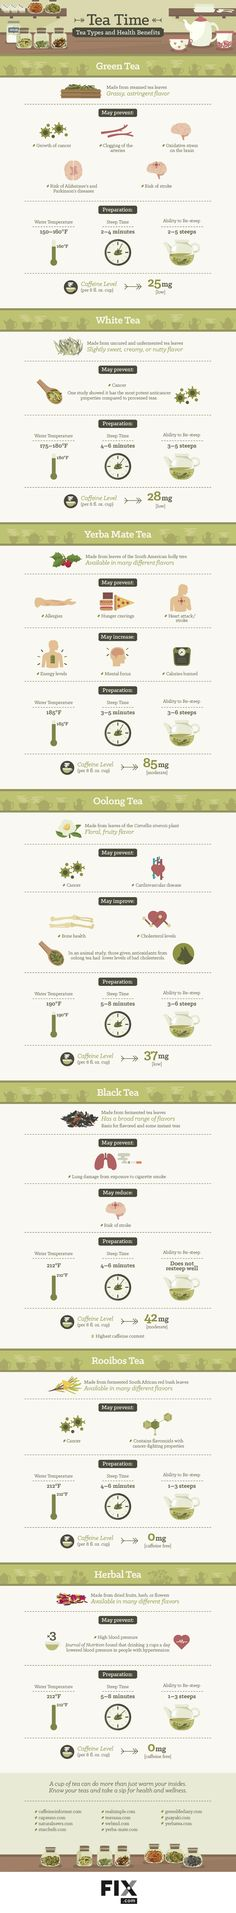 Giant Tea Time Infographic!